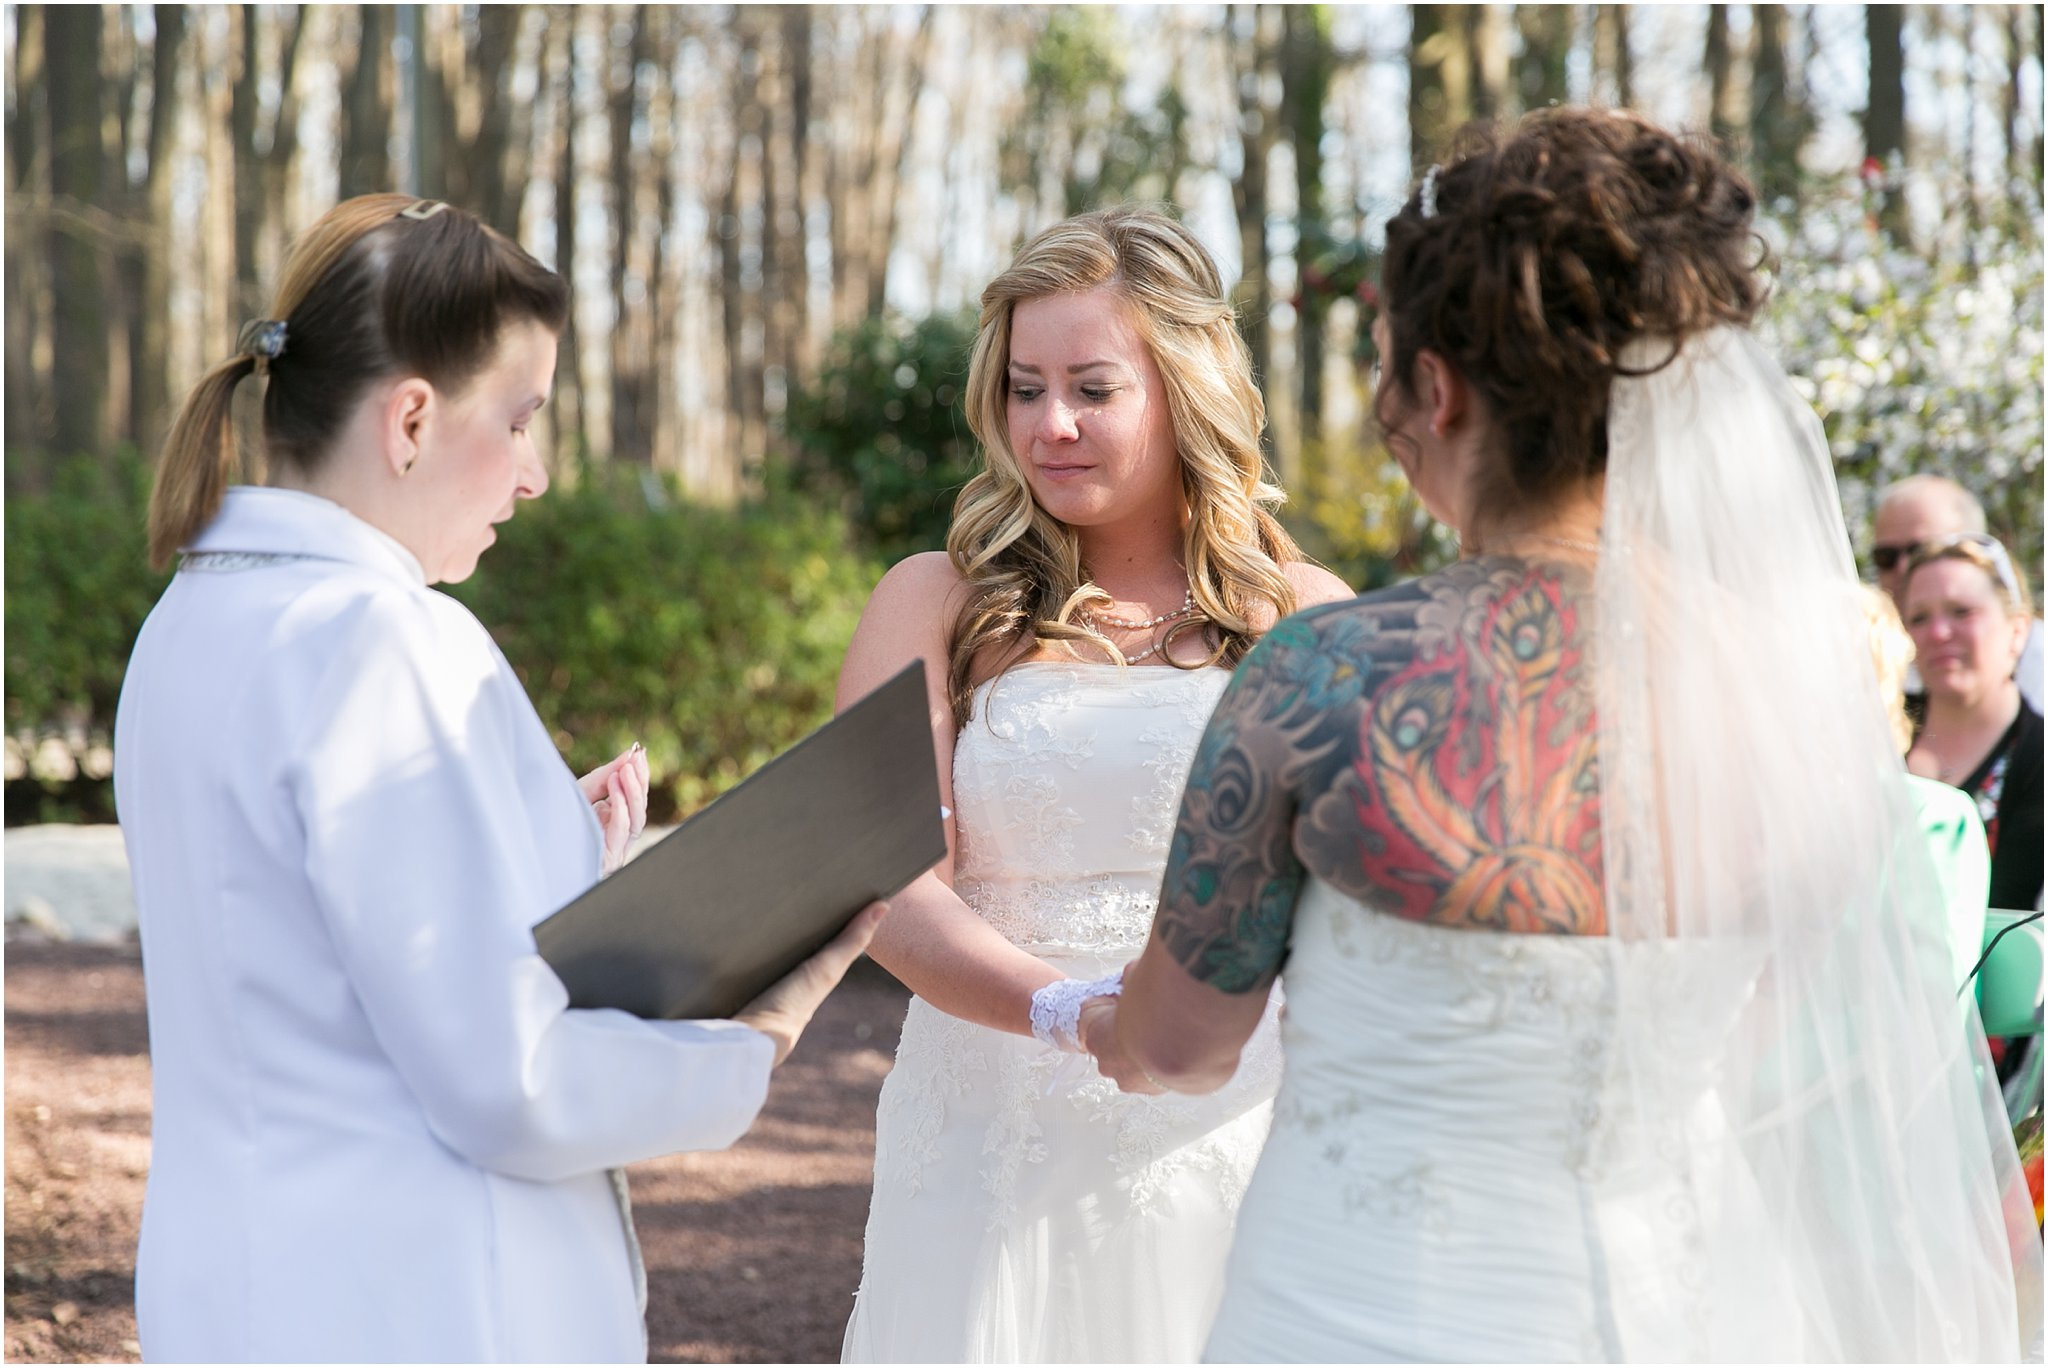 jessica_ryan_photography_wedding_hampton_roads_virginia_virginia_beach_weddings_0604